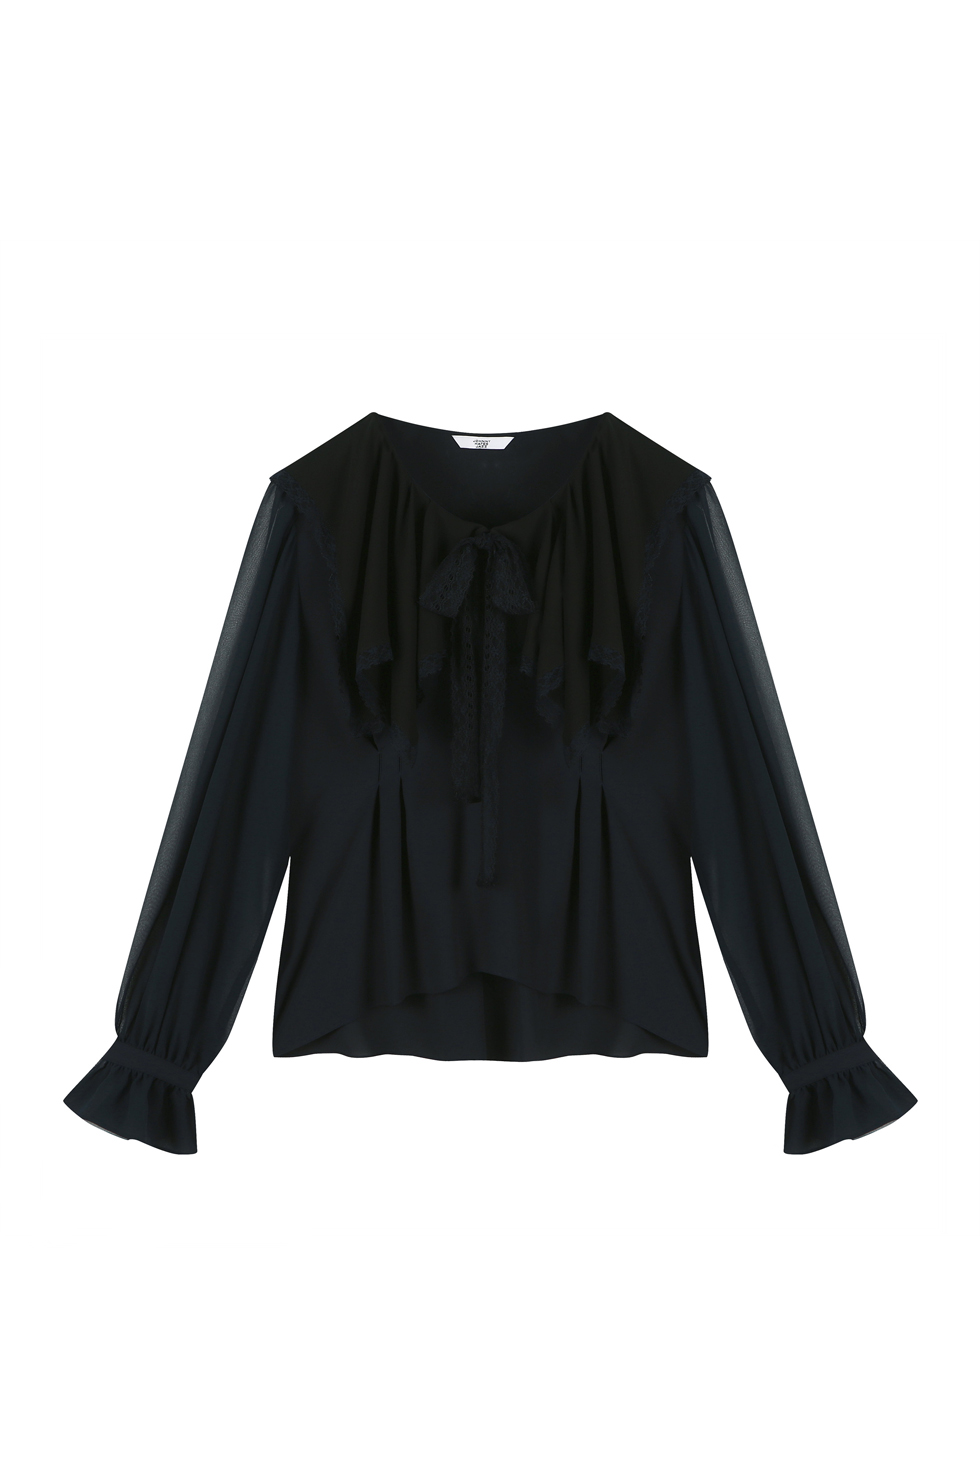 SQUARED RUFFLE BLOUSE - NAVY